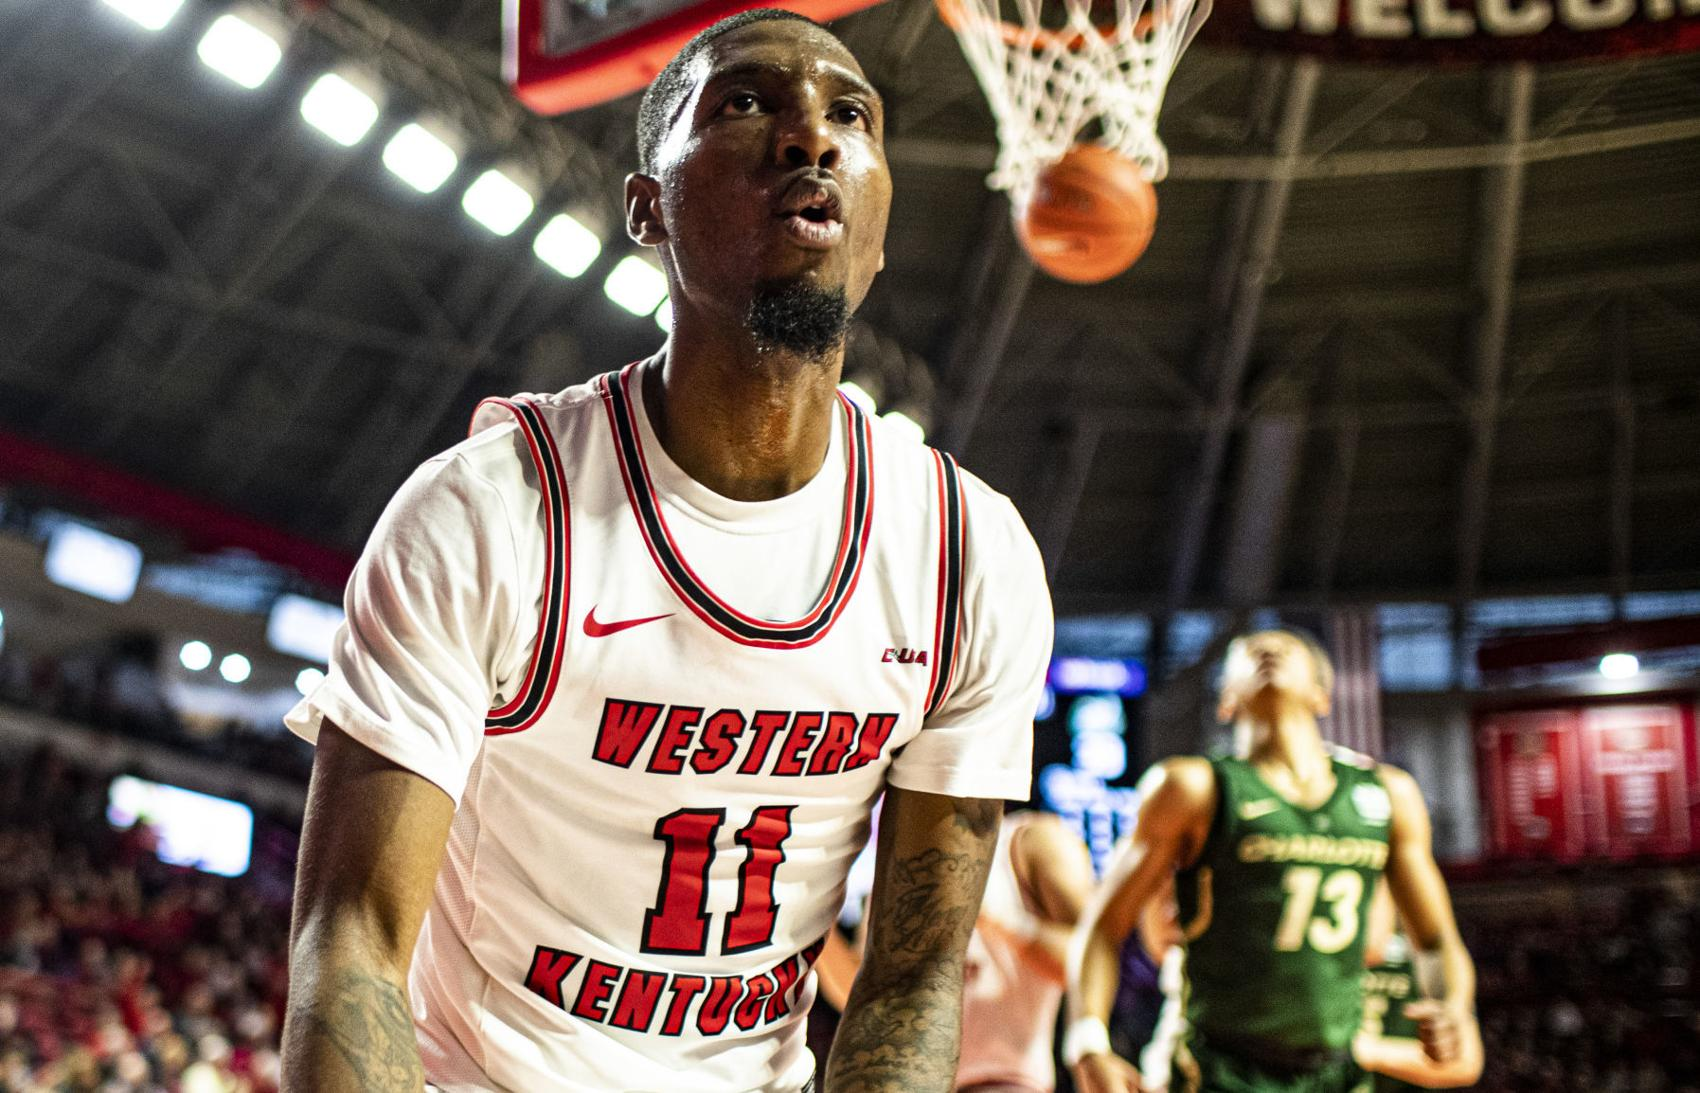 Hollingsworth goes off again to lead Hilltoppers over Charlotte 80-63